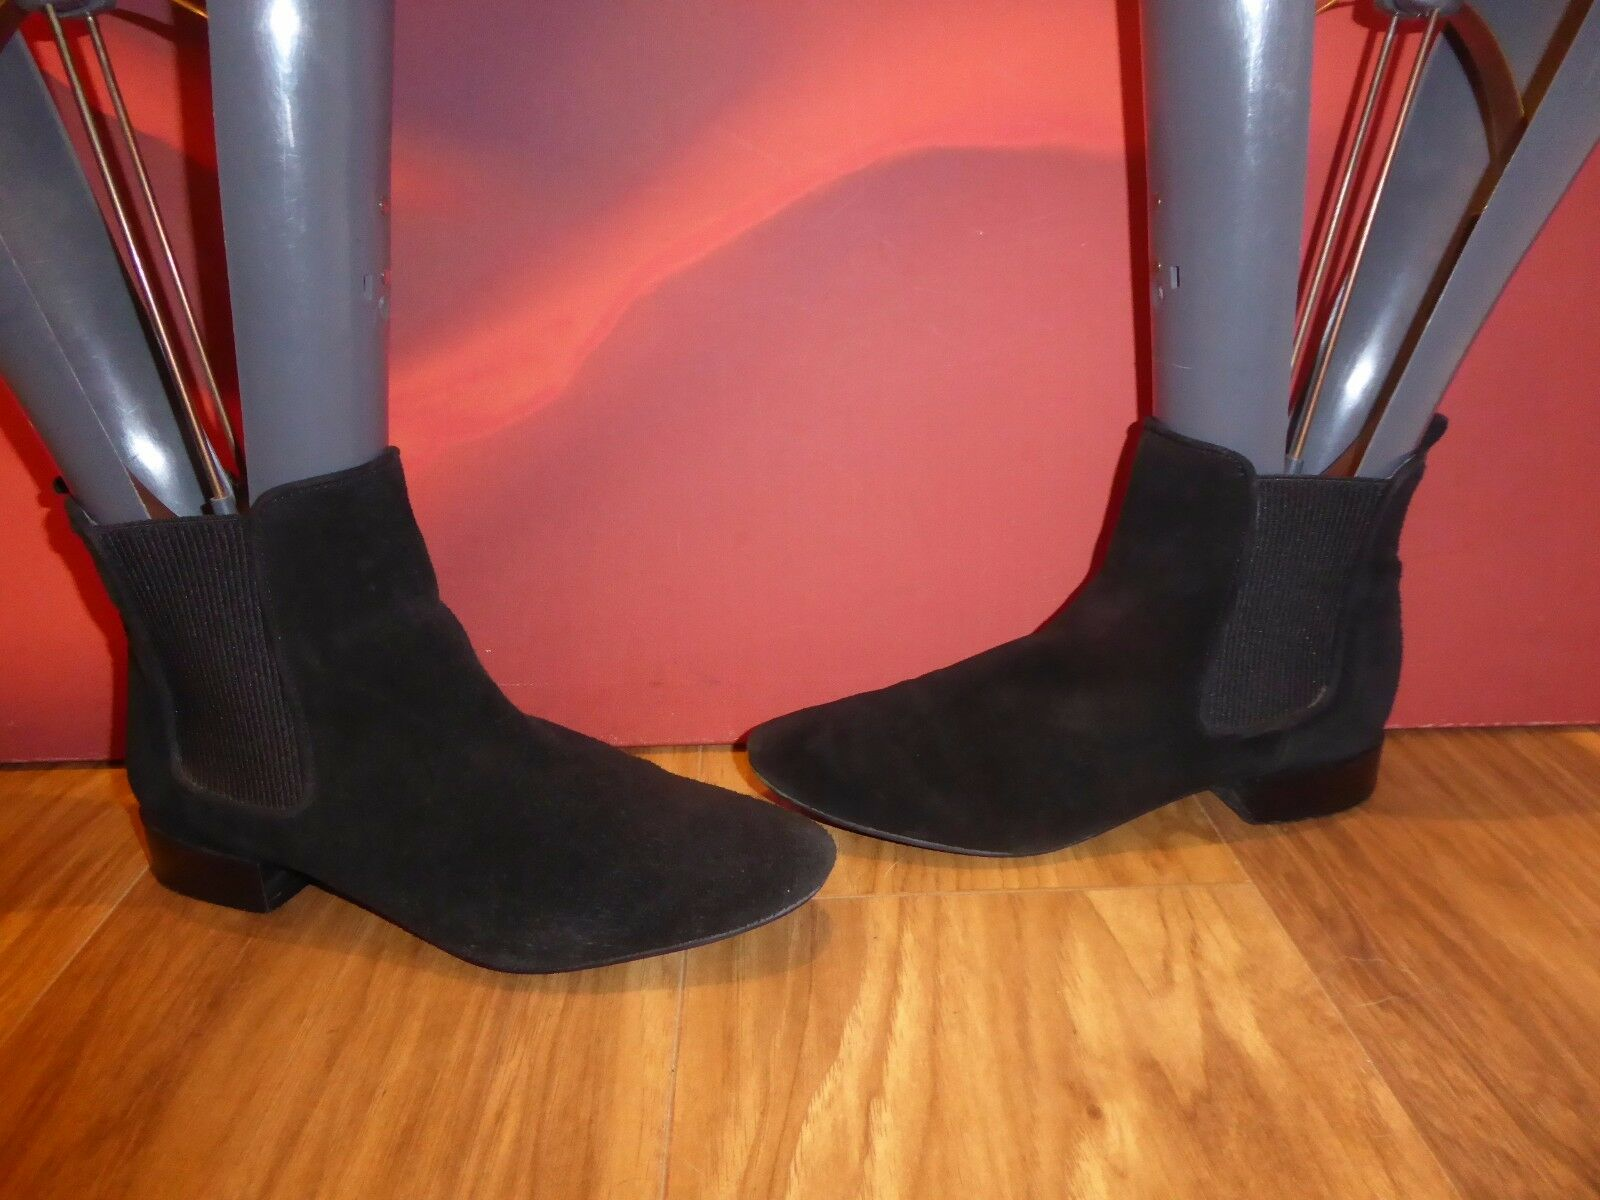 3 ZARA BLACK LEATHER SUEDE CHELSEA STYLE ANKLE BOOTS  EU 36 UK 3